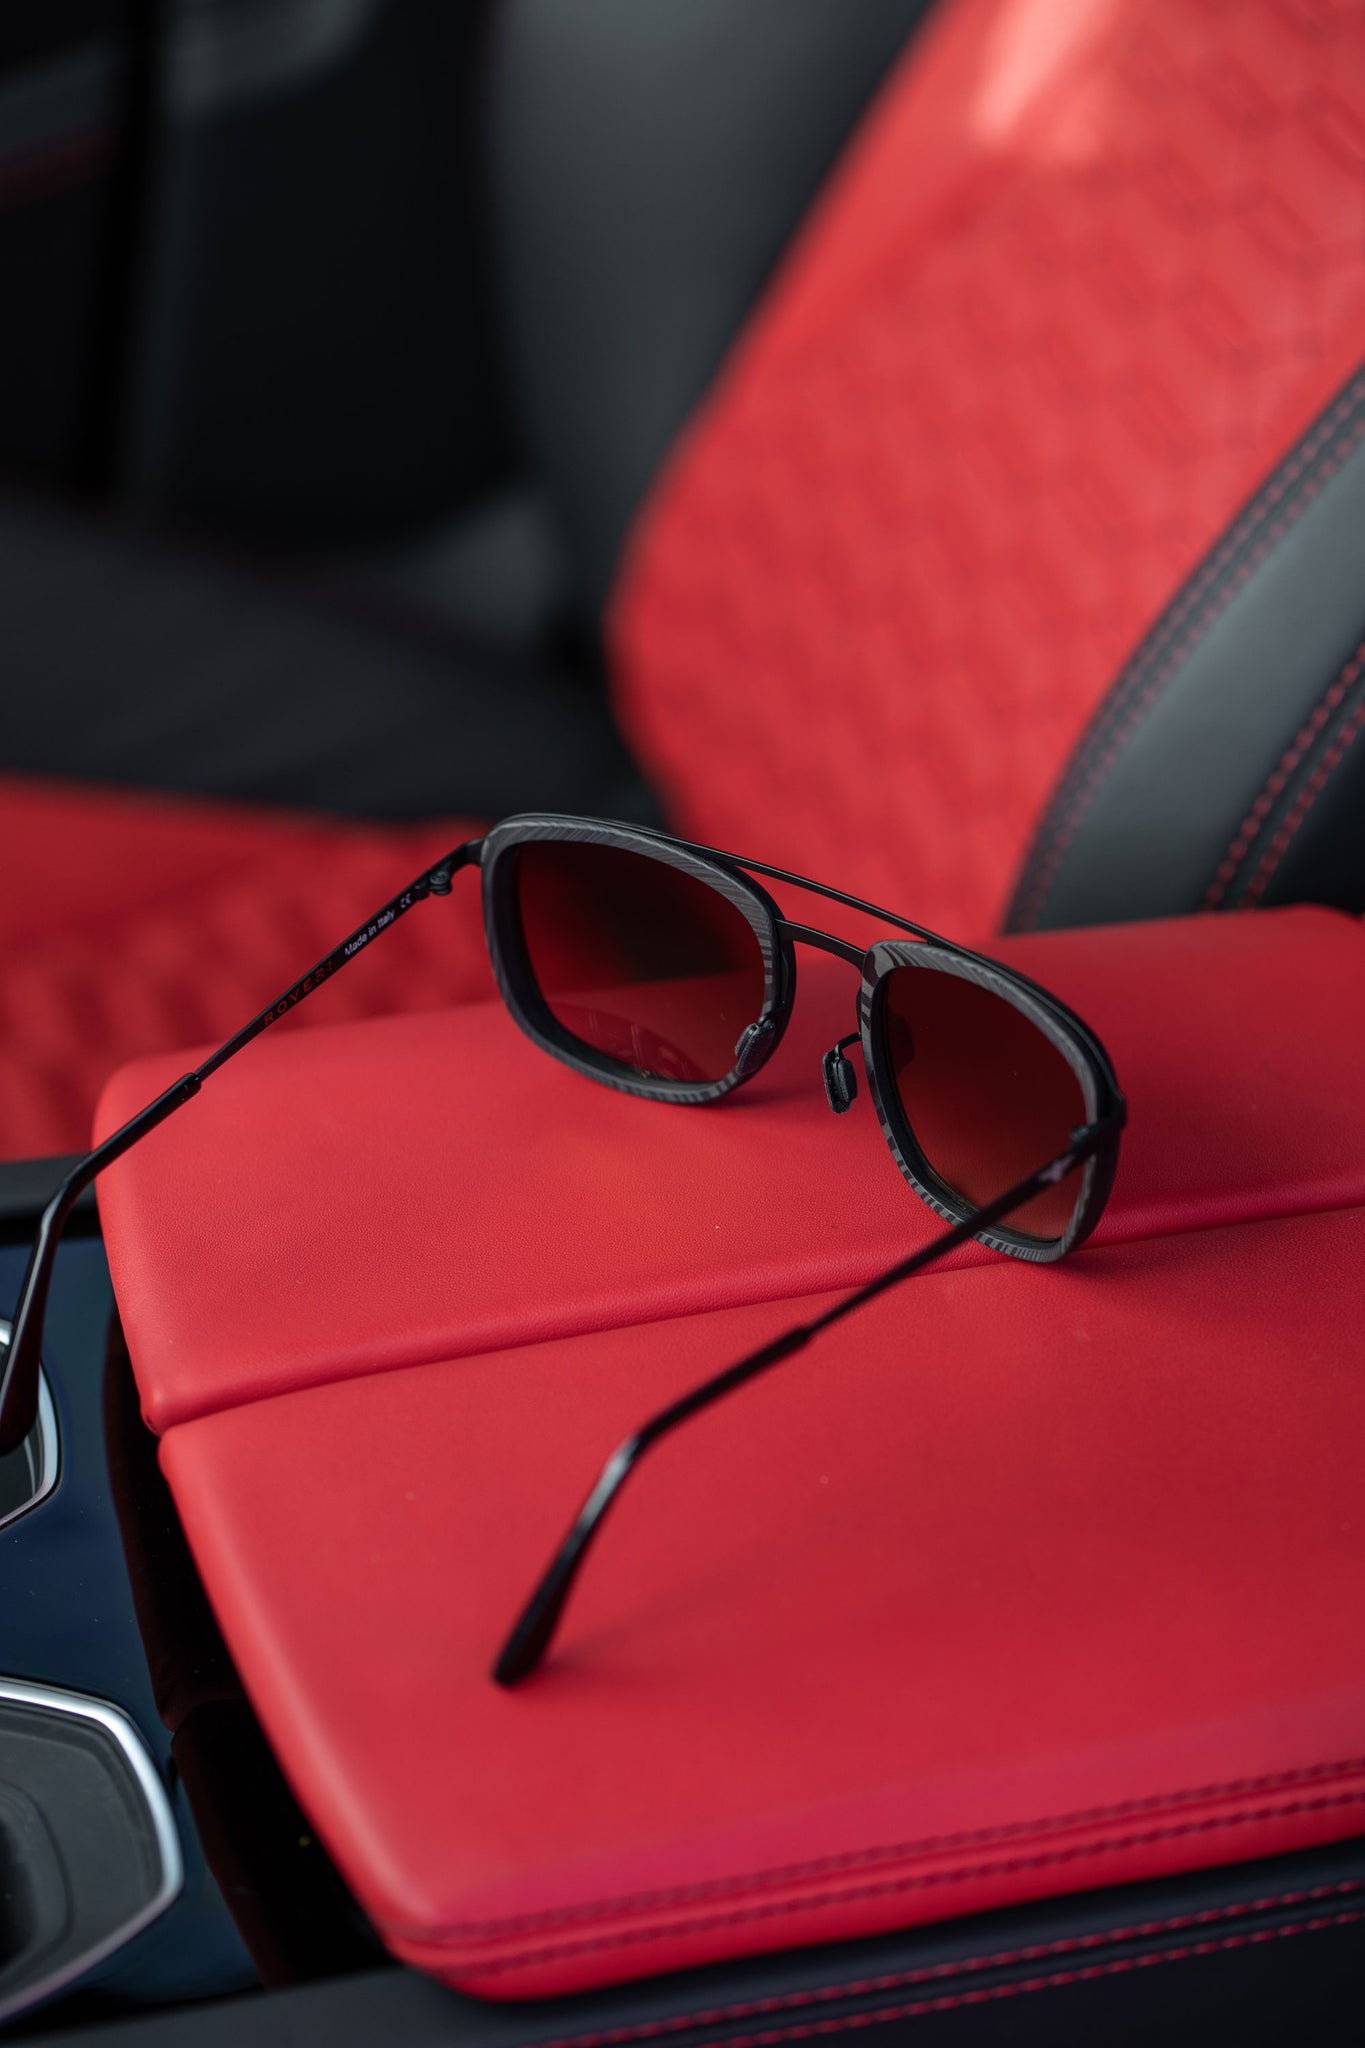 Roveri Eyewear carbon-titanium aviators rv018 photoshoot with Lamborghini Urus.